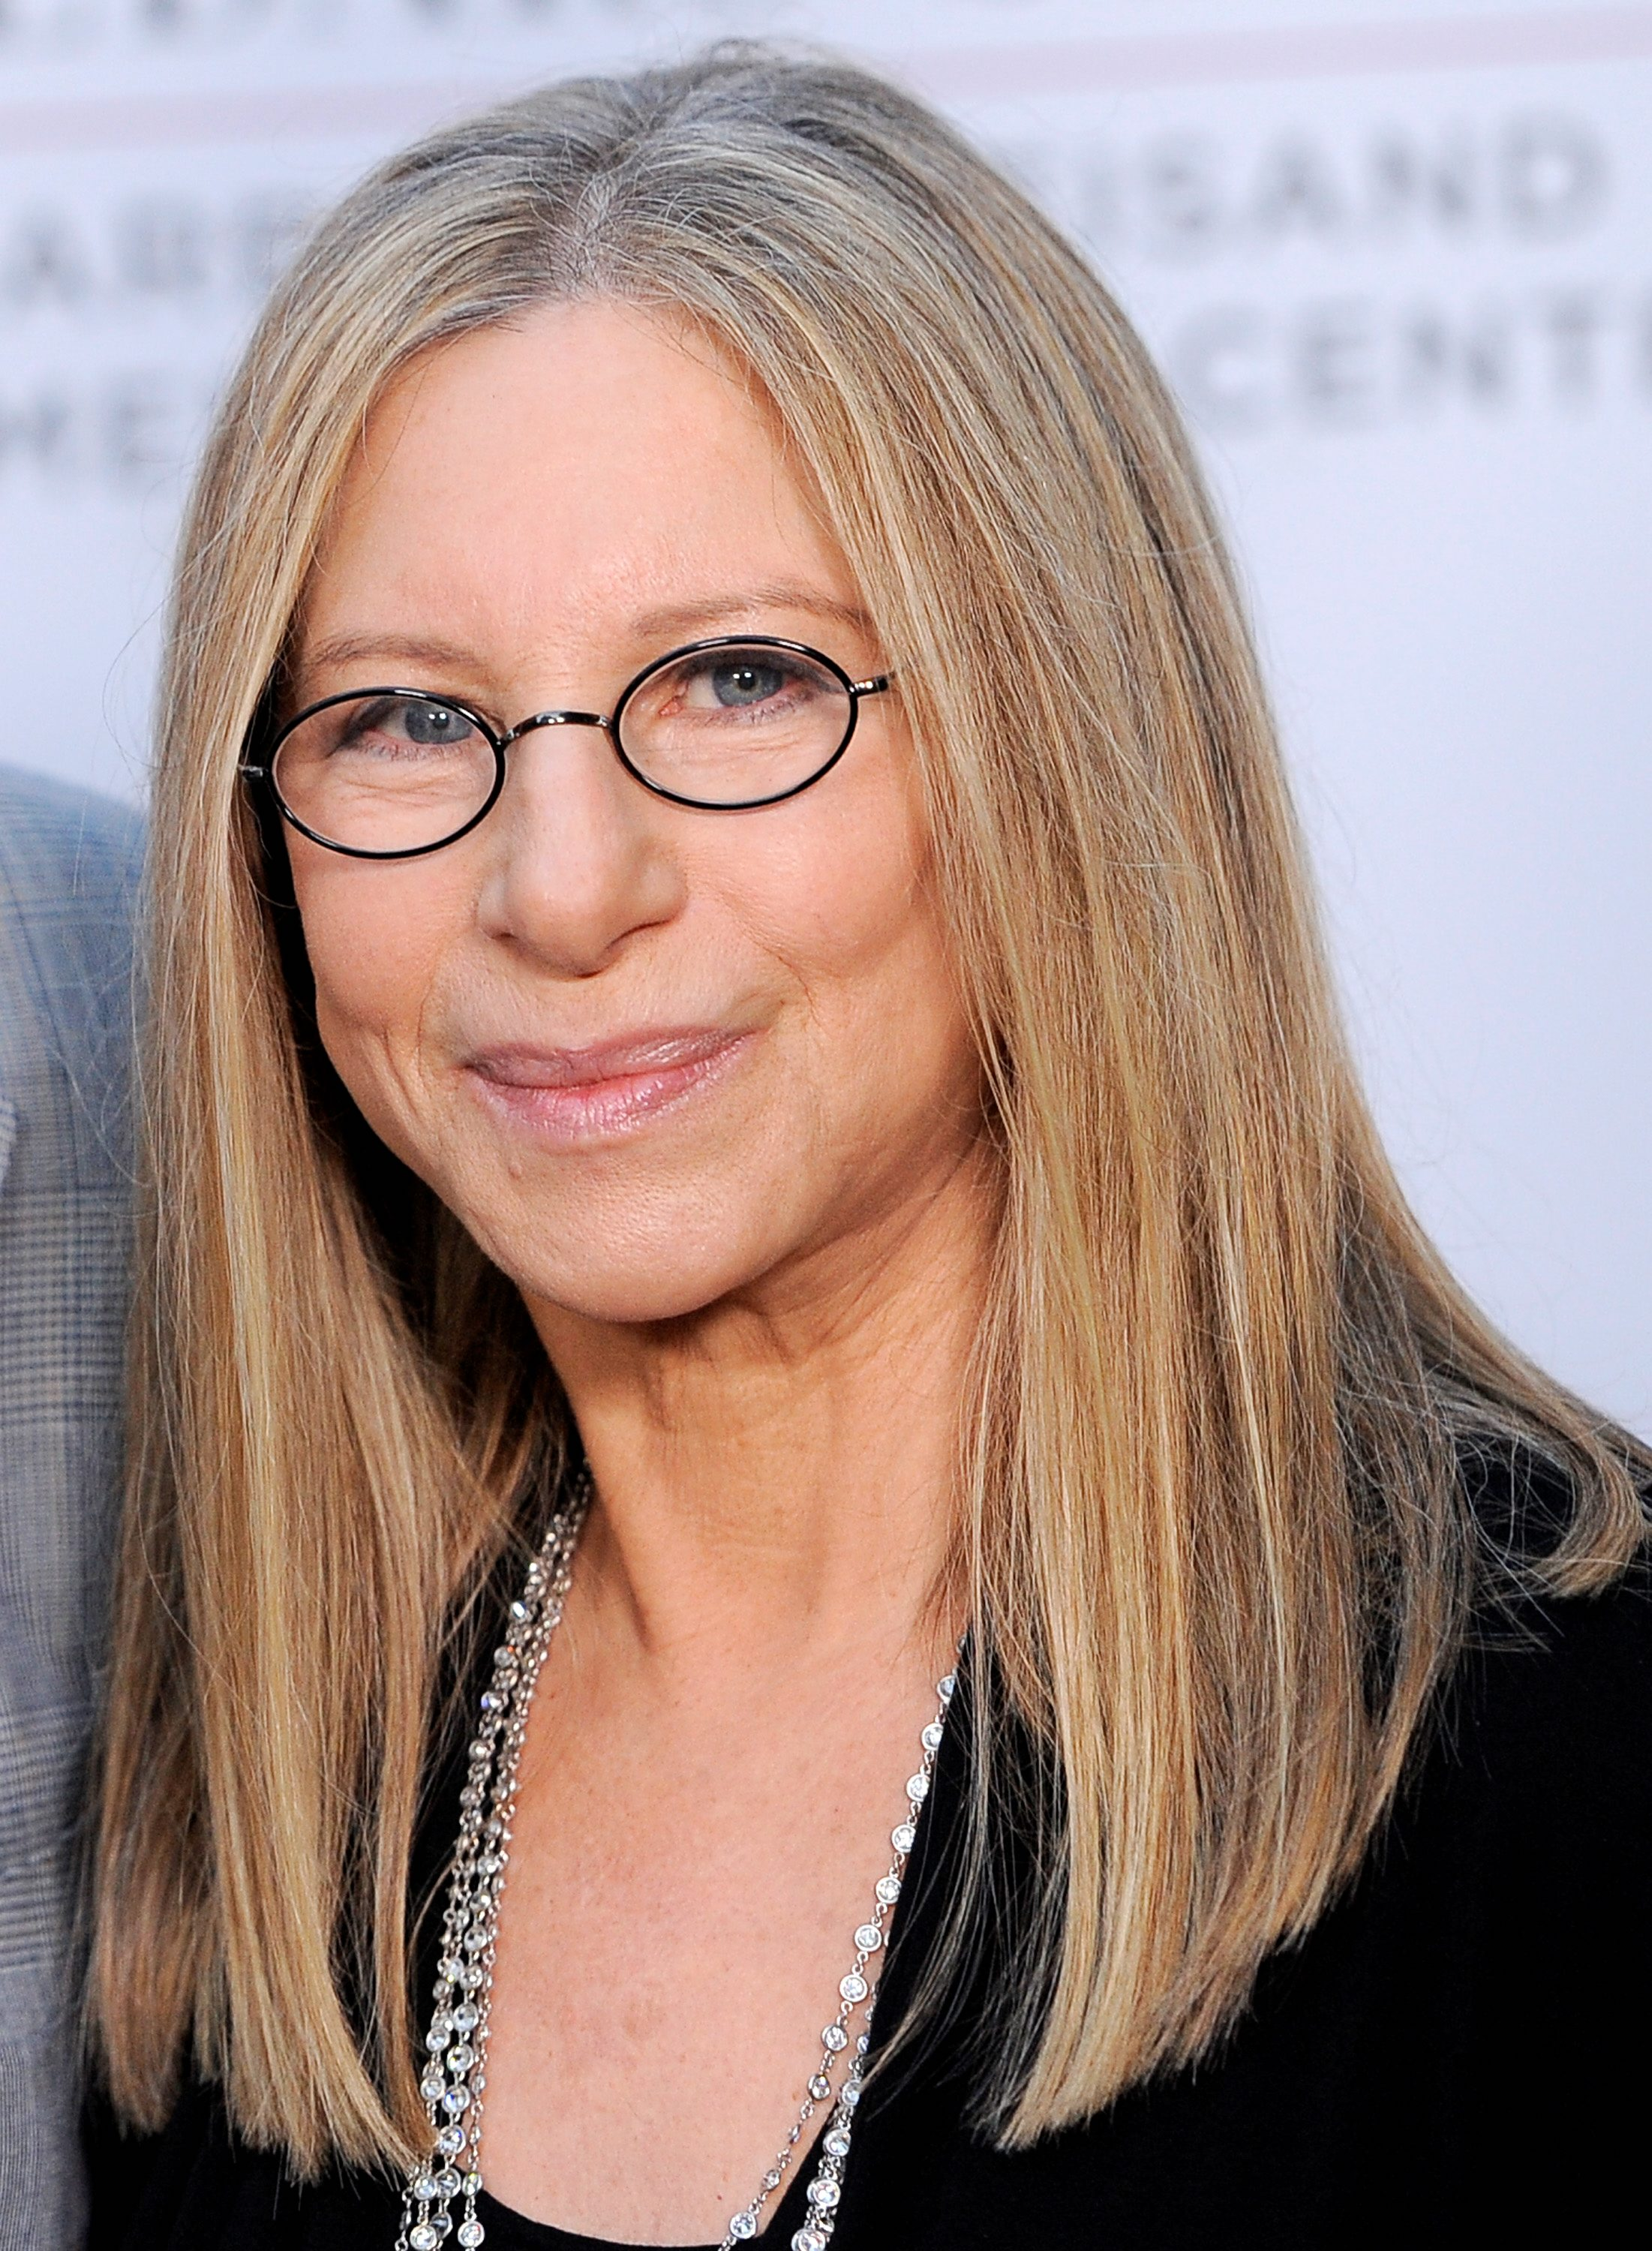 image Diane keaton in the movie the good mother